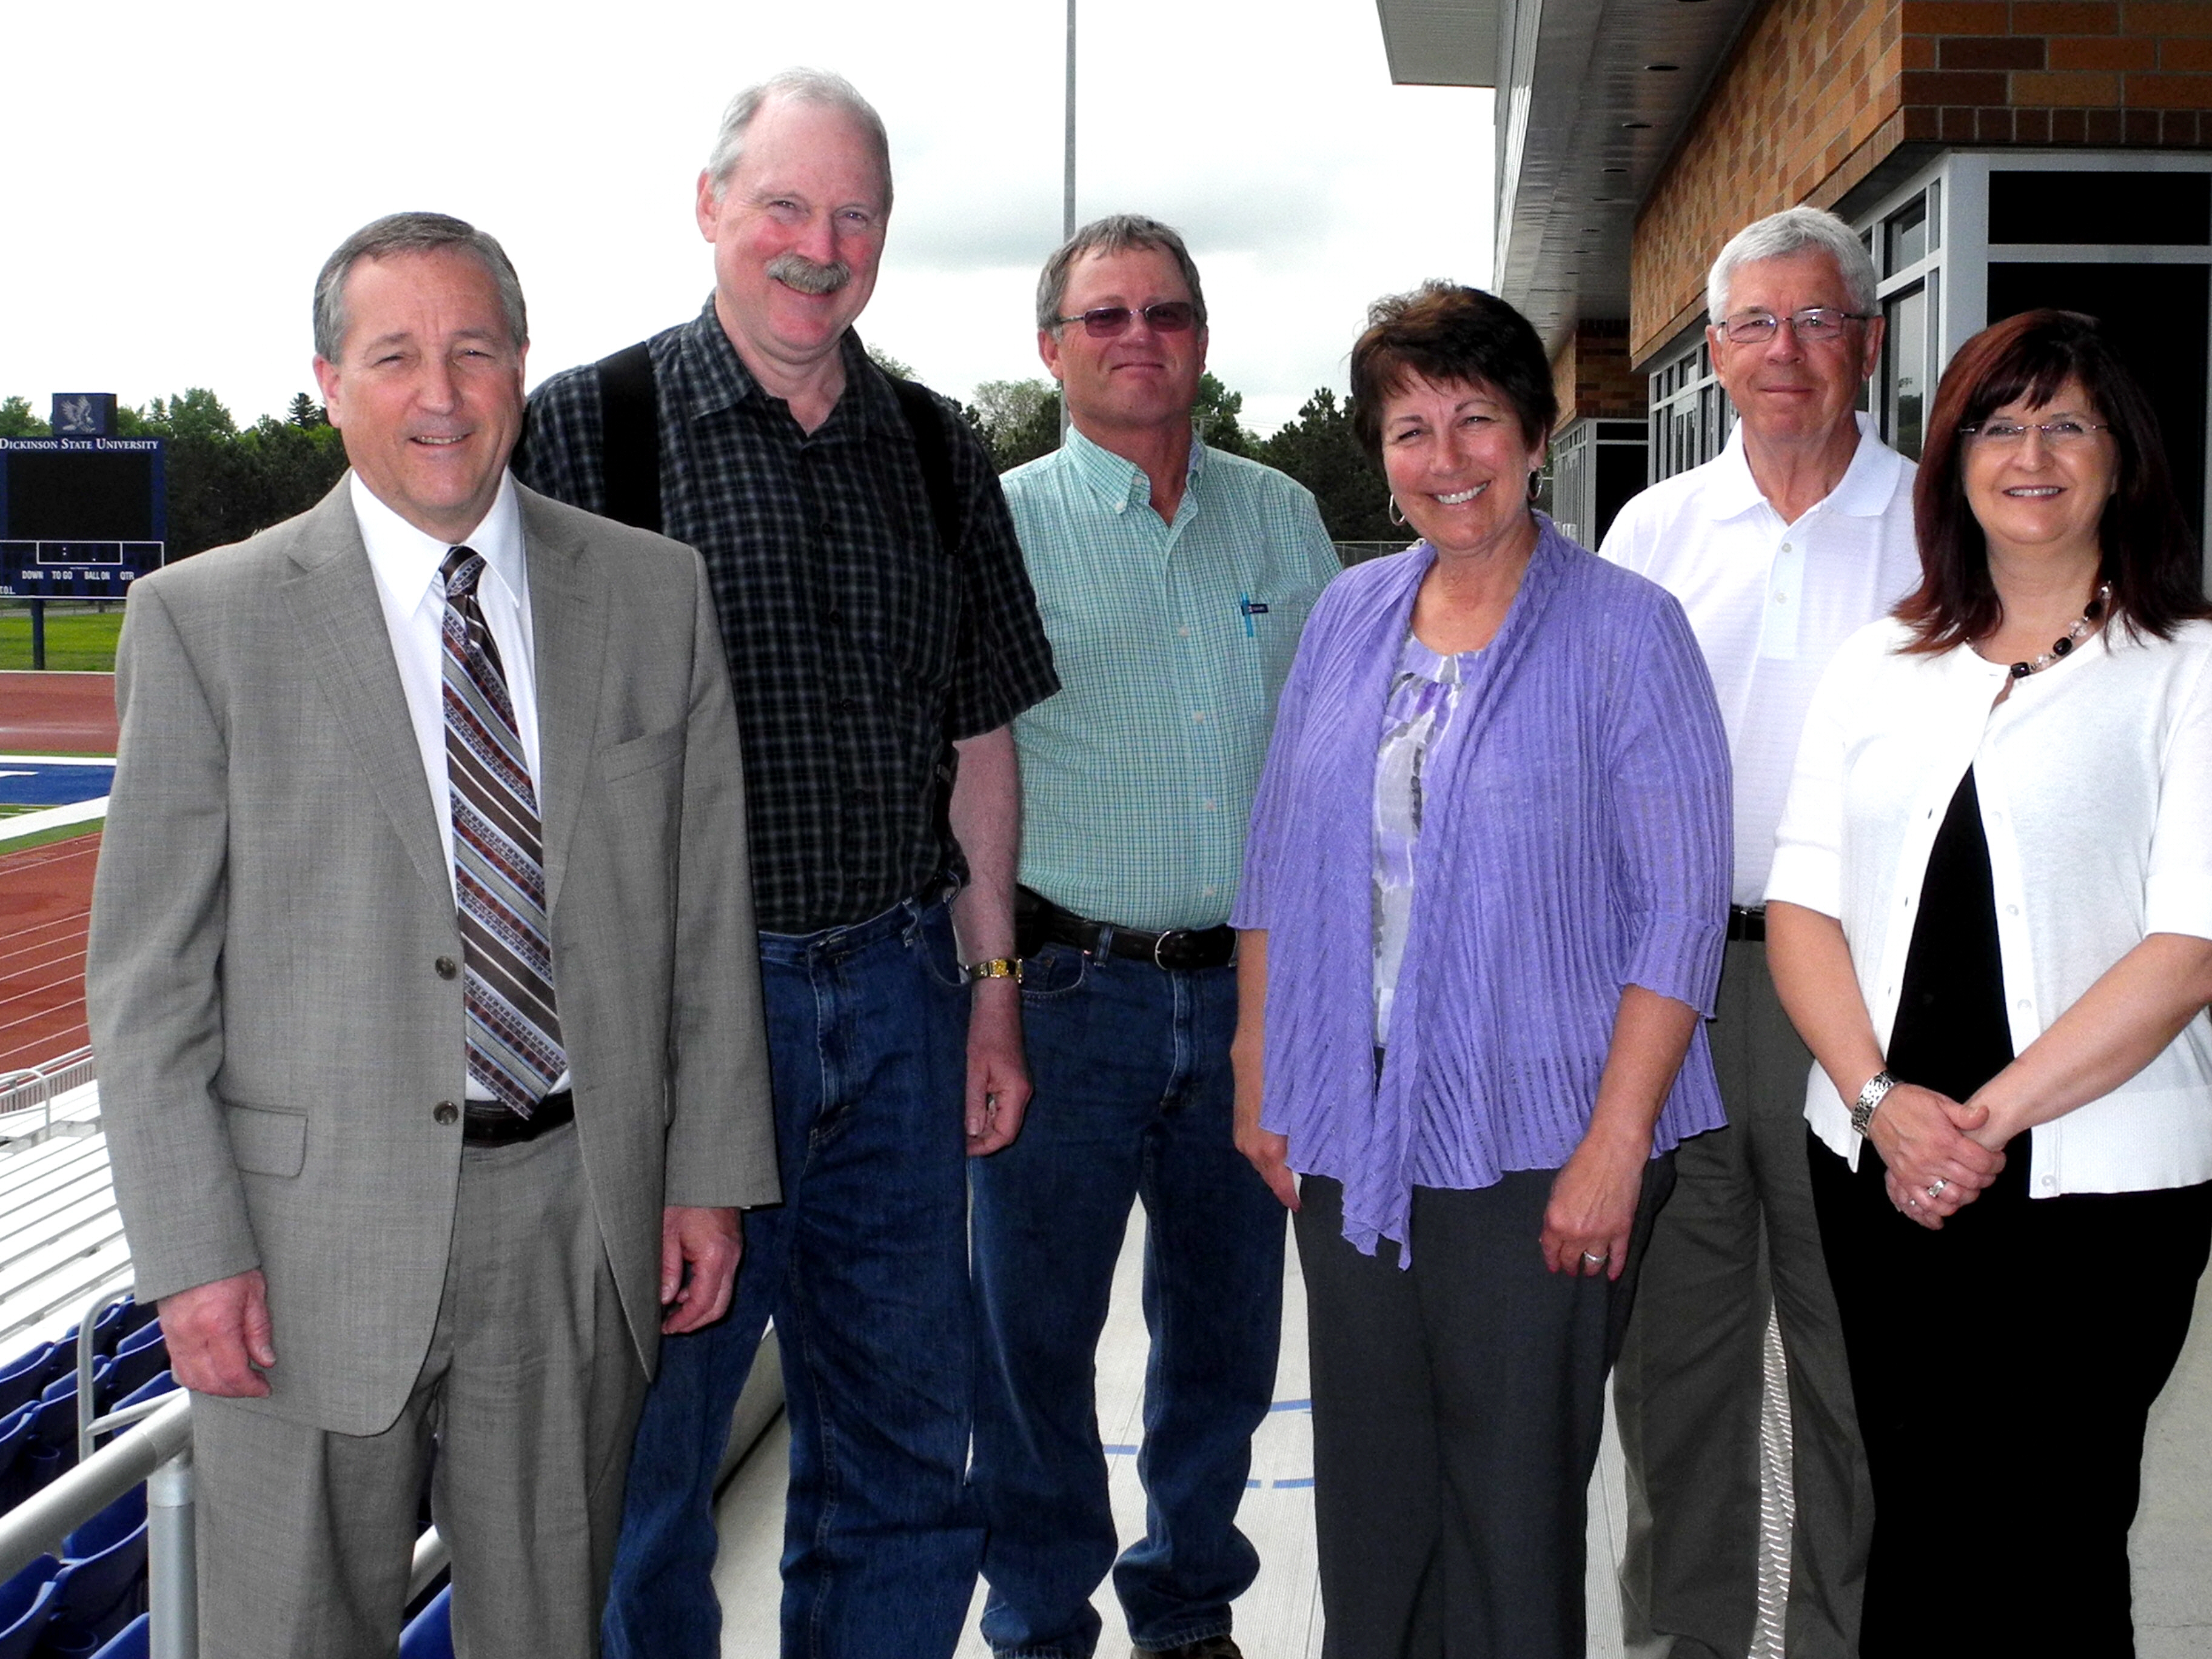 Alaska Senator Bert Stedman, Chairman of The Energy Council, thanks officials from Dickinson, North Dakota, who briefed members of the Council's Executive Committee on impacts to their city and region from Bakken oil development. From left to right are Dickinson Mayor Dennis Johnson; Senator Stedman; Mr. Al Heiser, Stark County Road Superintendent; North Dakota Representative Vicky Steiner; North Dakota Senator Rich Wardner; and Ms. Melanie Kathrein of the Dickinson Public School District.